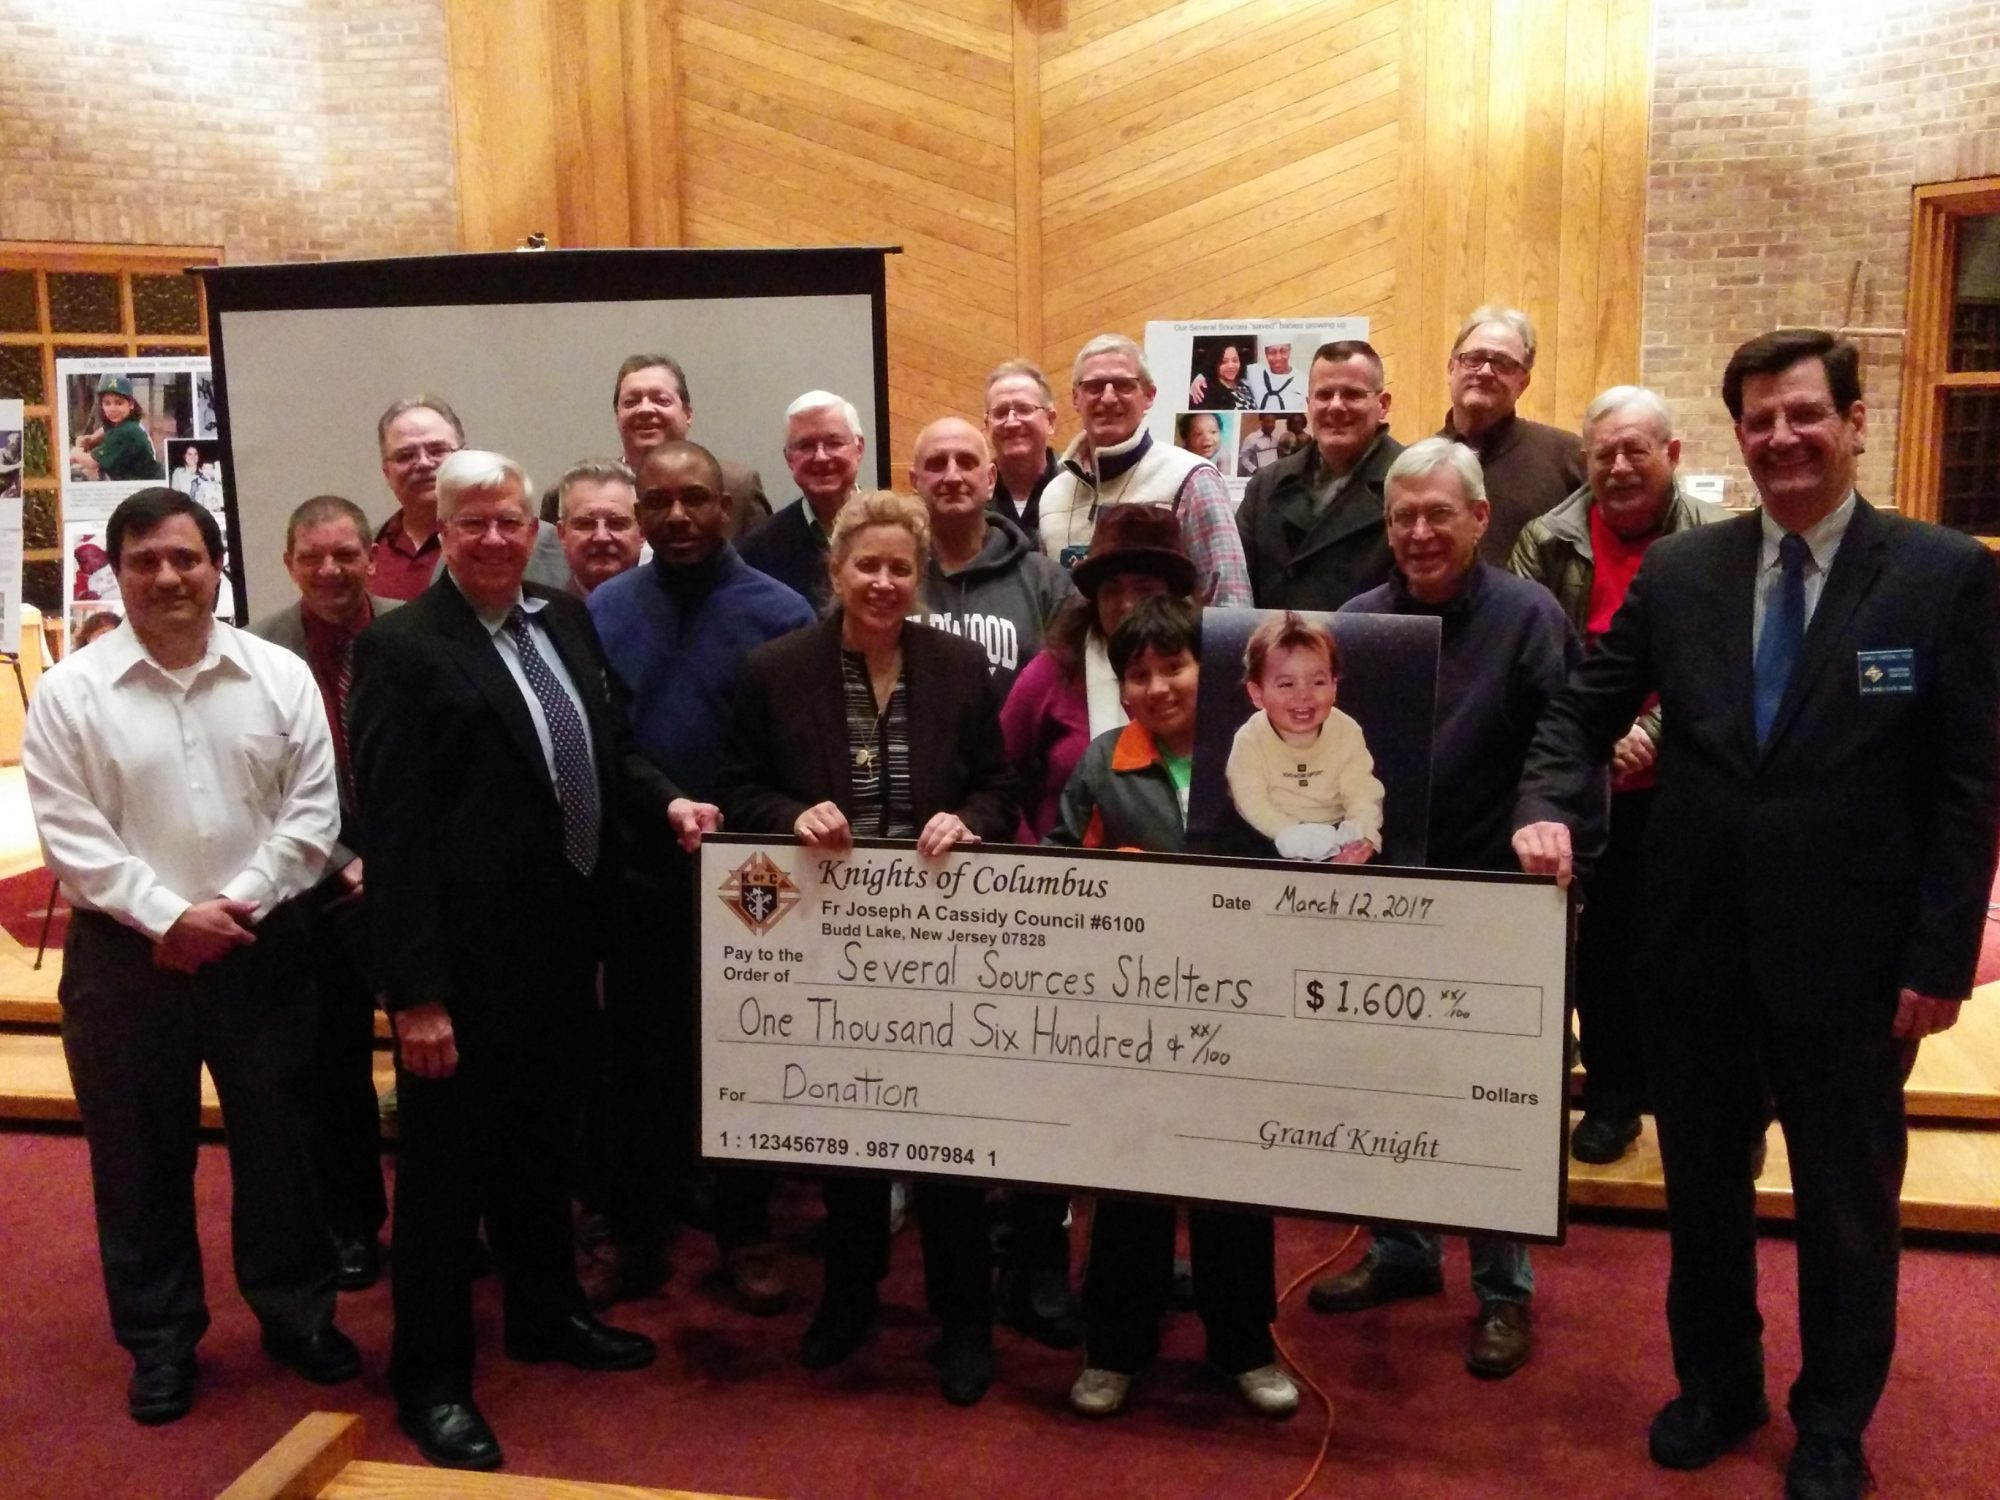 The Knights of Columbus present Kathy DiFiore with donation check